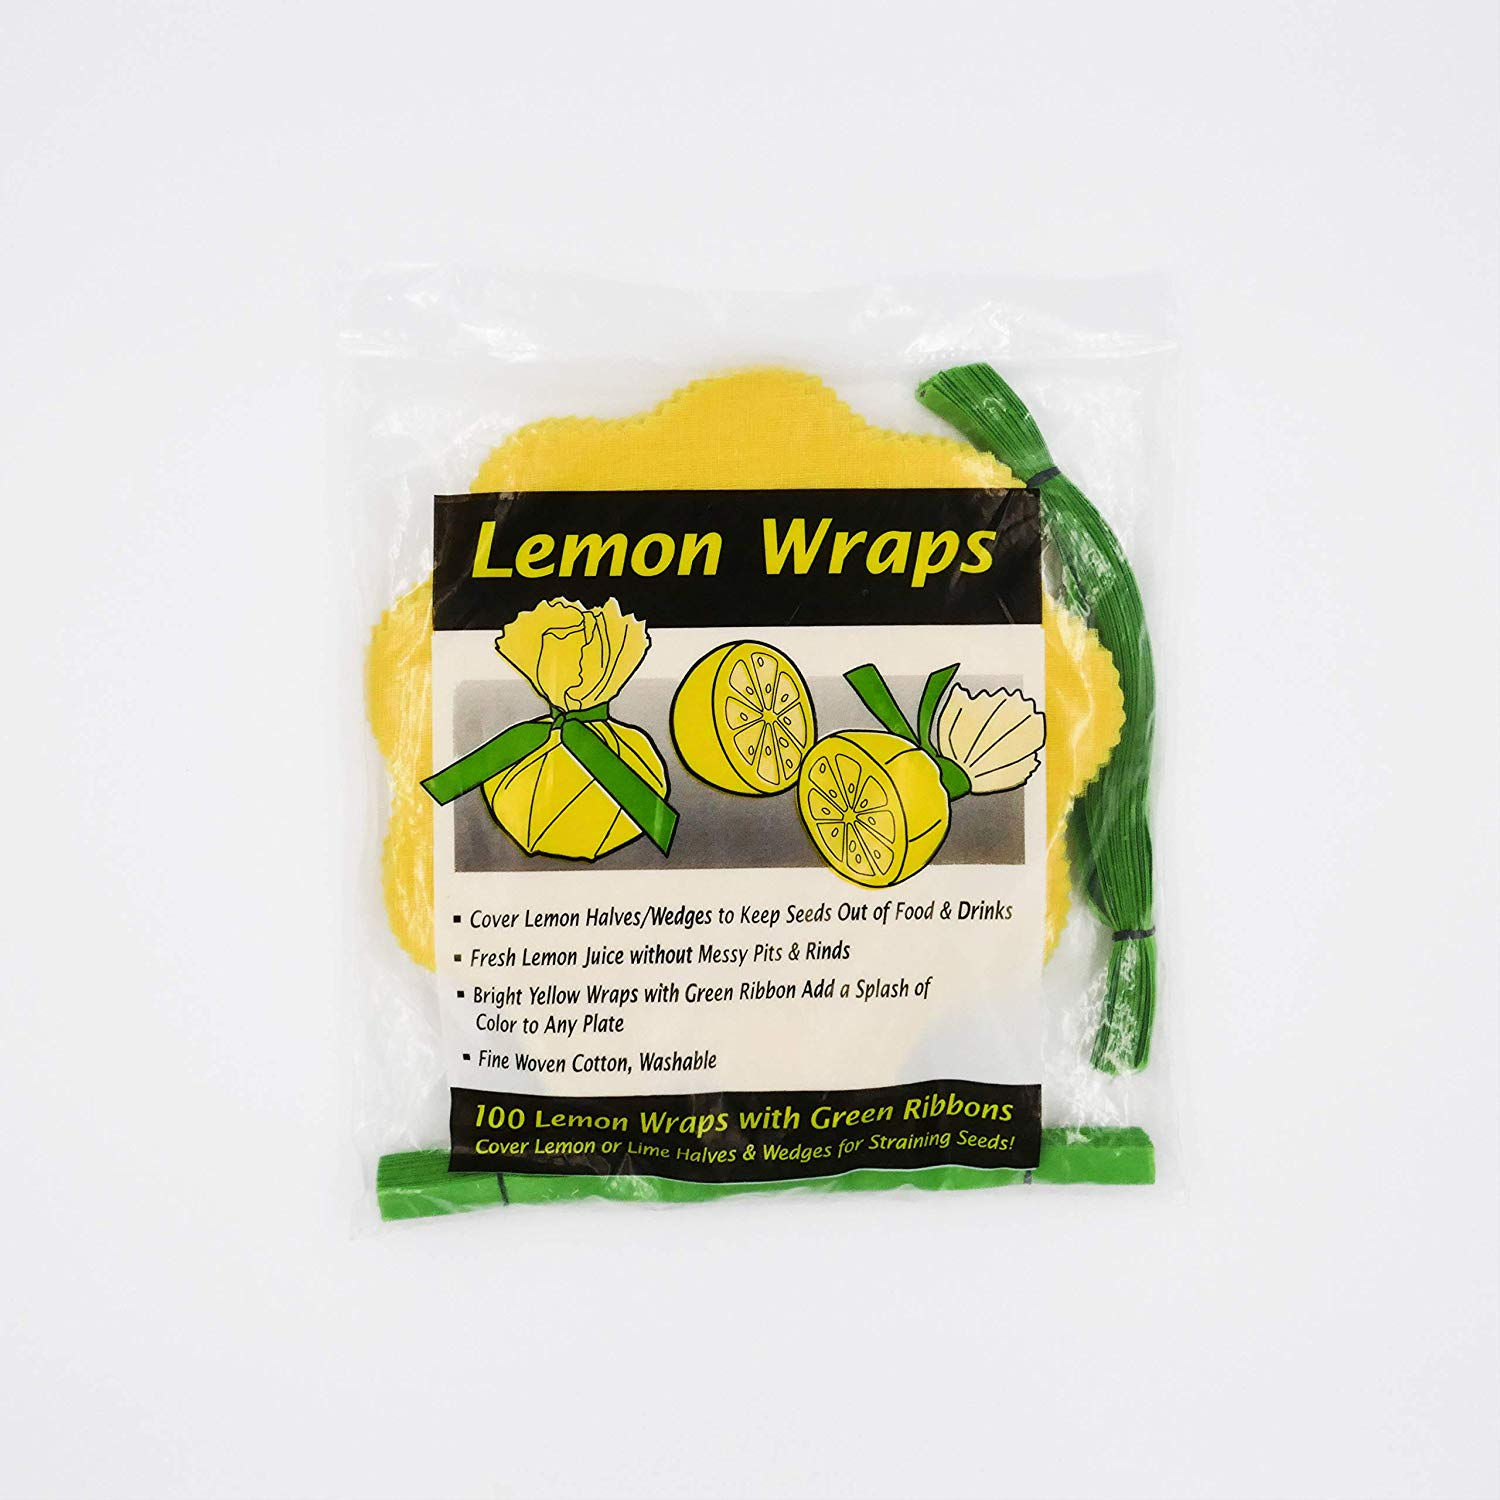 Lemon Wraps - 100 Pack With Green Ribbons